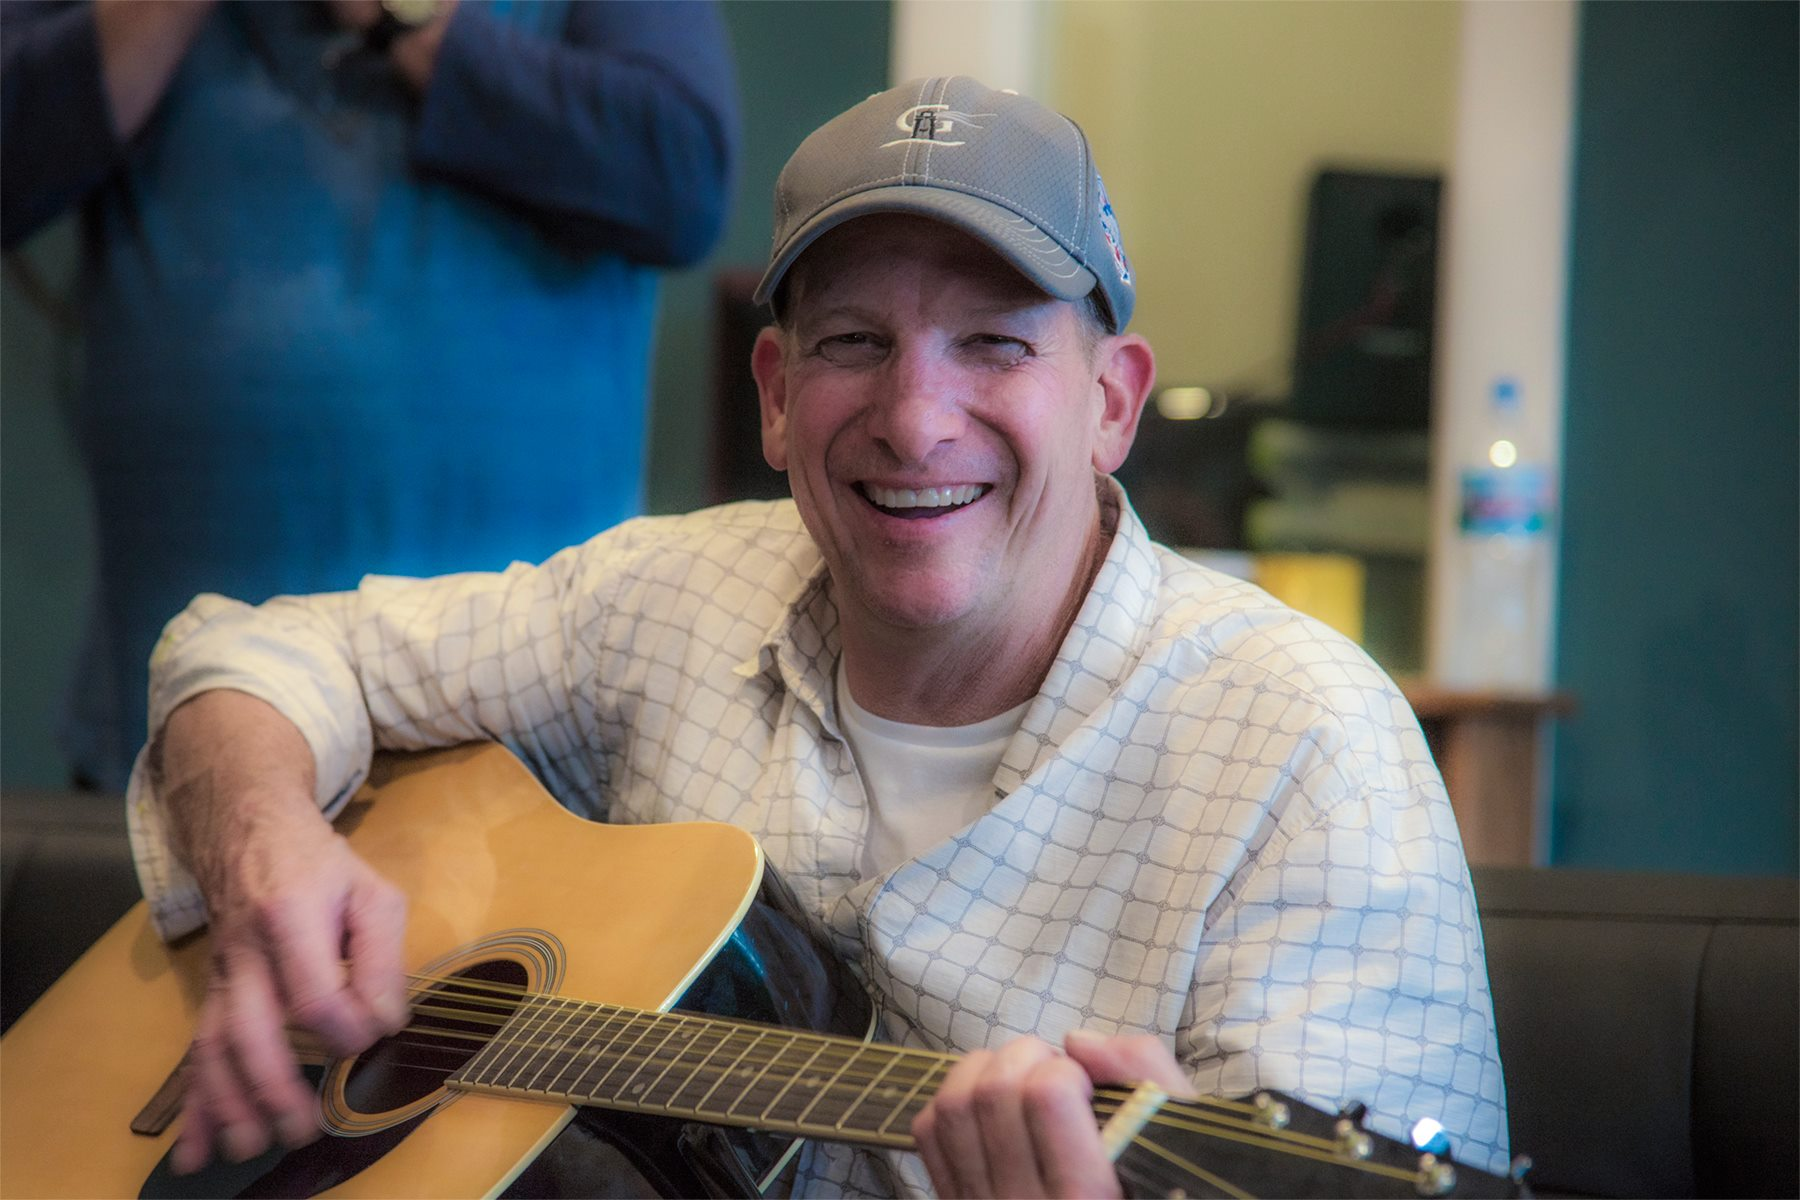 Dave Palmer is the founder on the Walk the Beat Organization, formerly known as Spread the Music. Dave has been pioneering events, giveaways and community outreach programs for the past 20 years and is the spirit behind Walk the Beat and its programs.